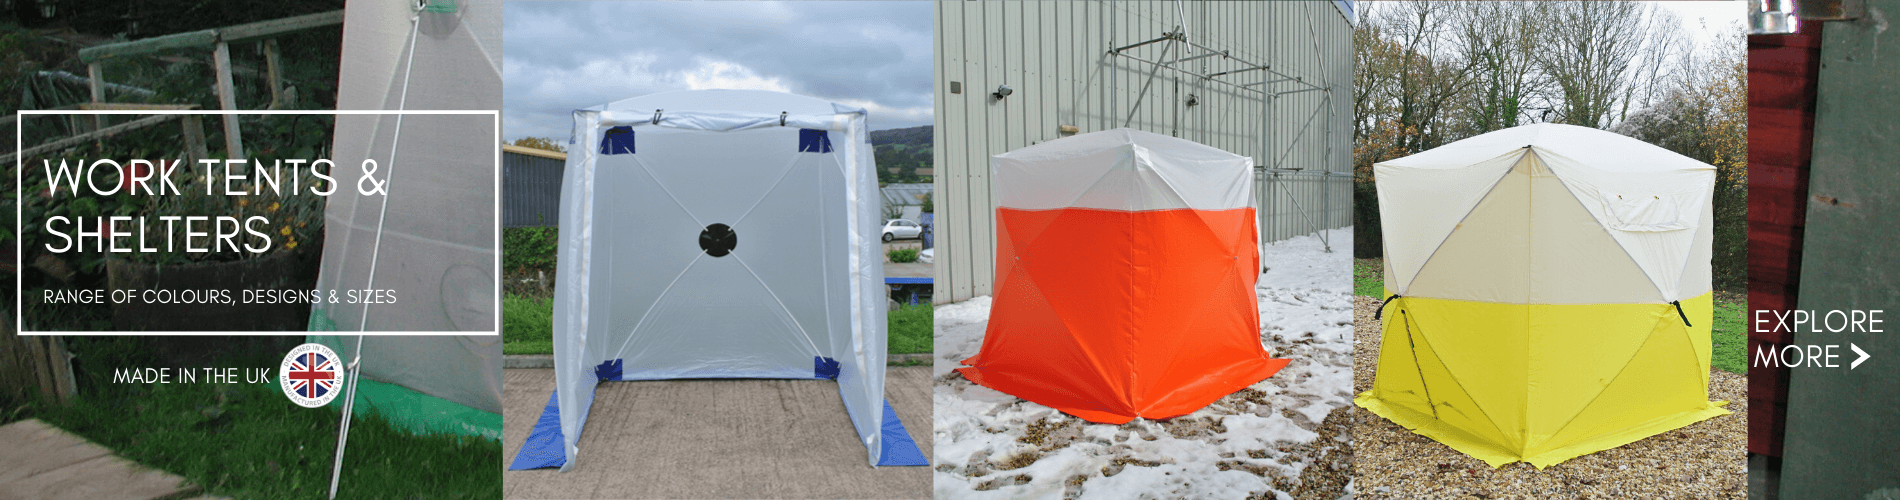 Work Tents & Shelters